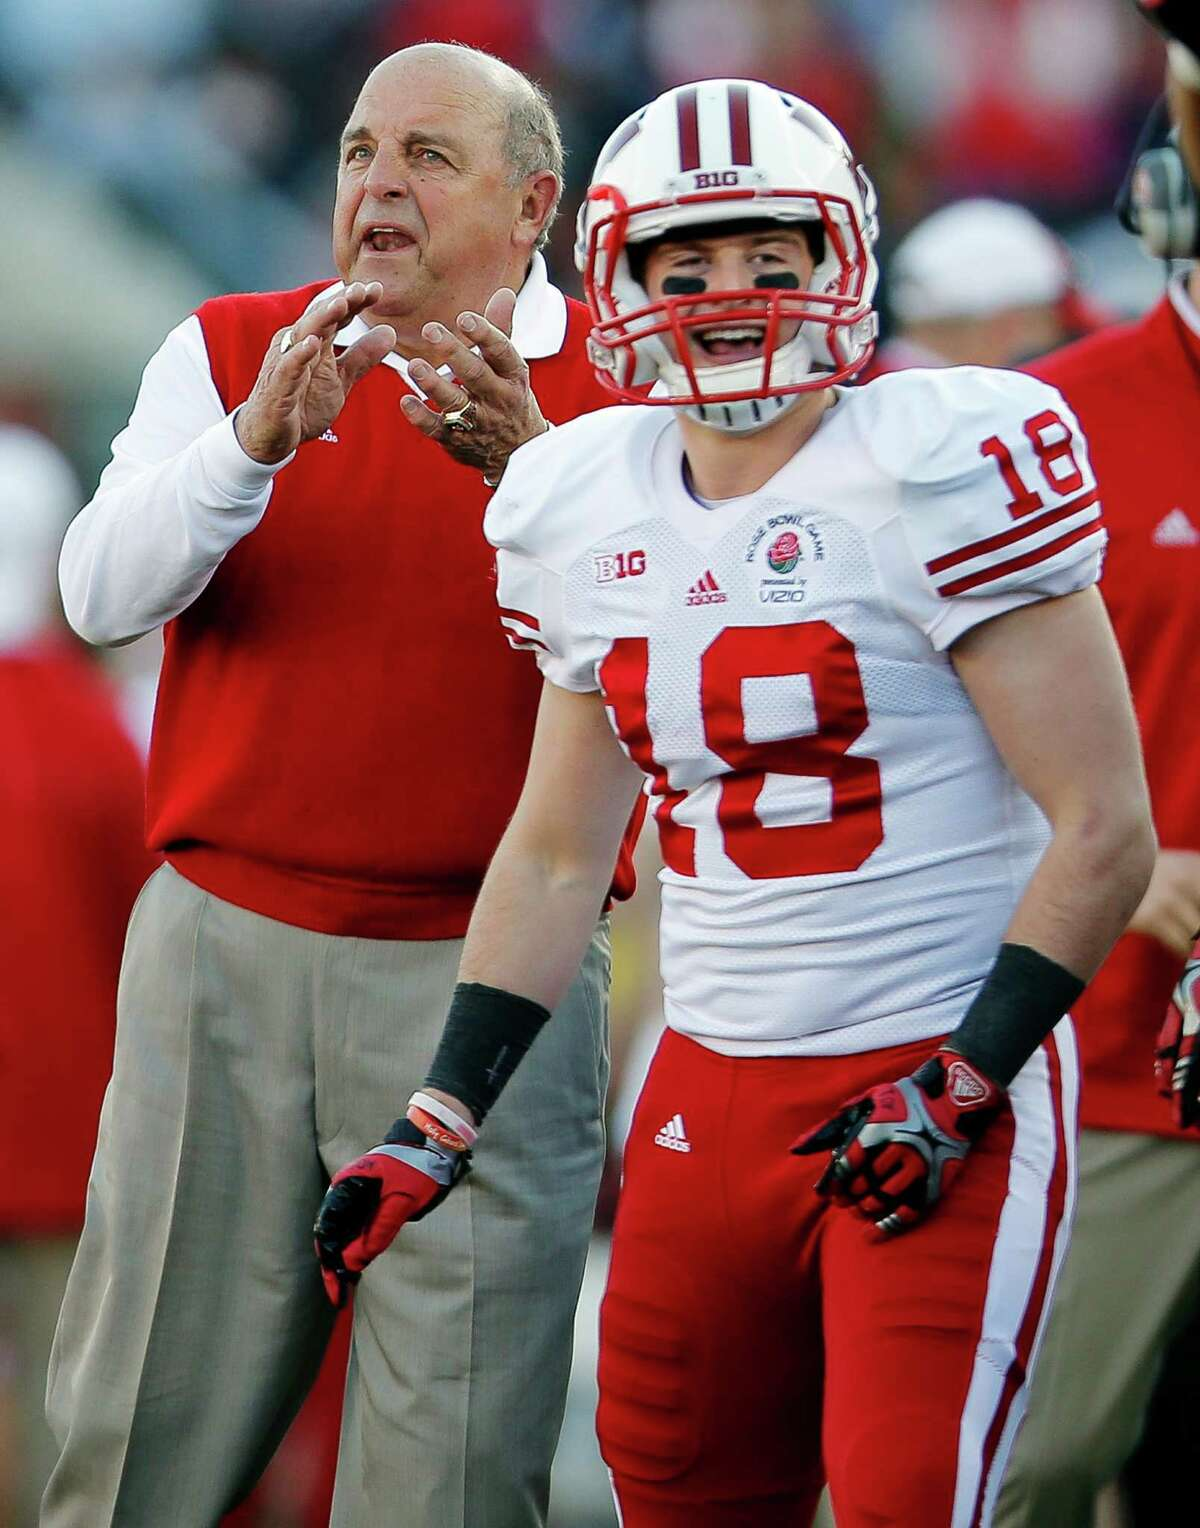 Wisconsin left coach Barry Alvarez and wide receiver Lance Baretz react after a touchdown during the first half of the Rose Bowl against Stanford on Jan. 1, 2013, in Pasadena, Calif.